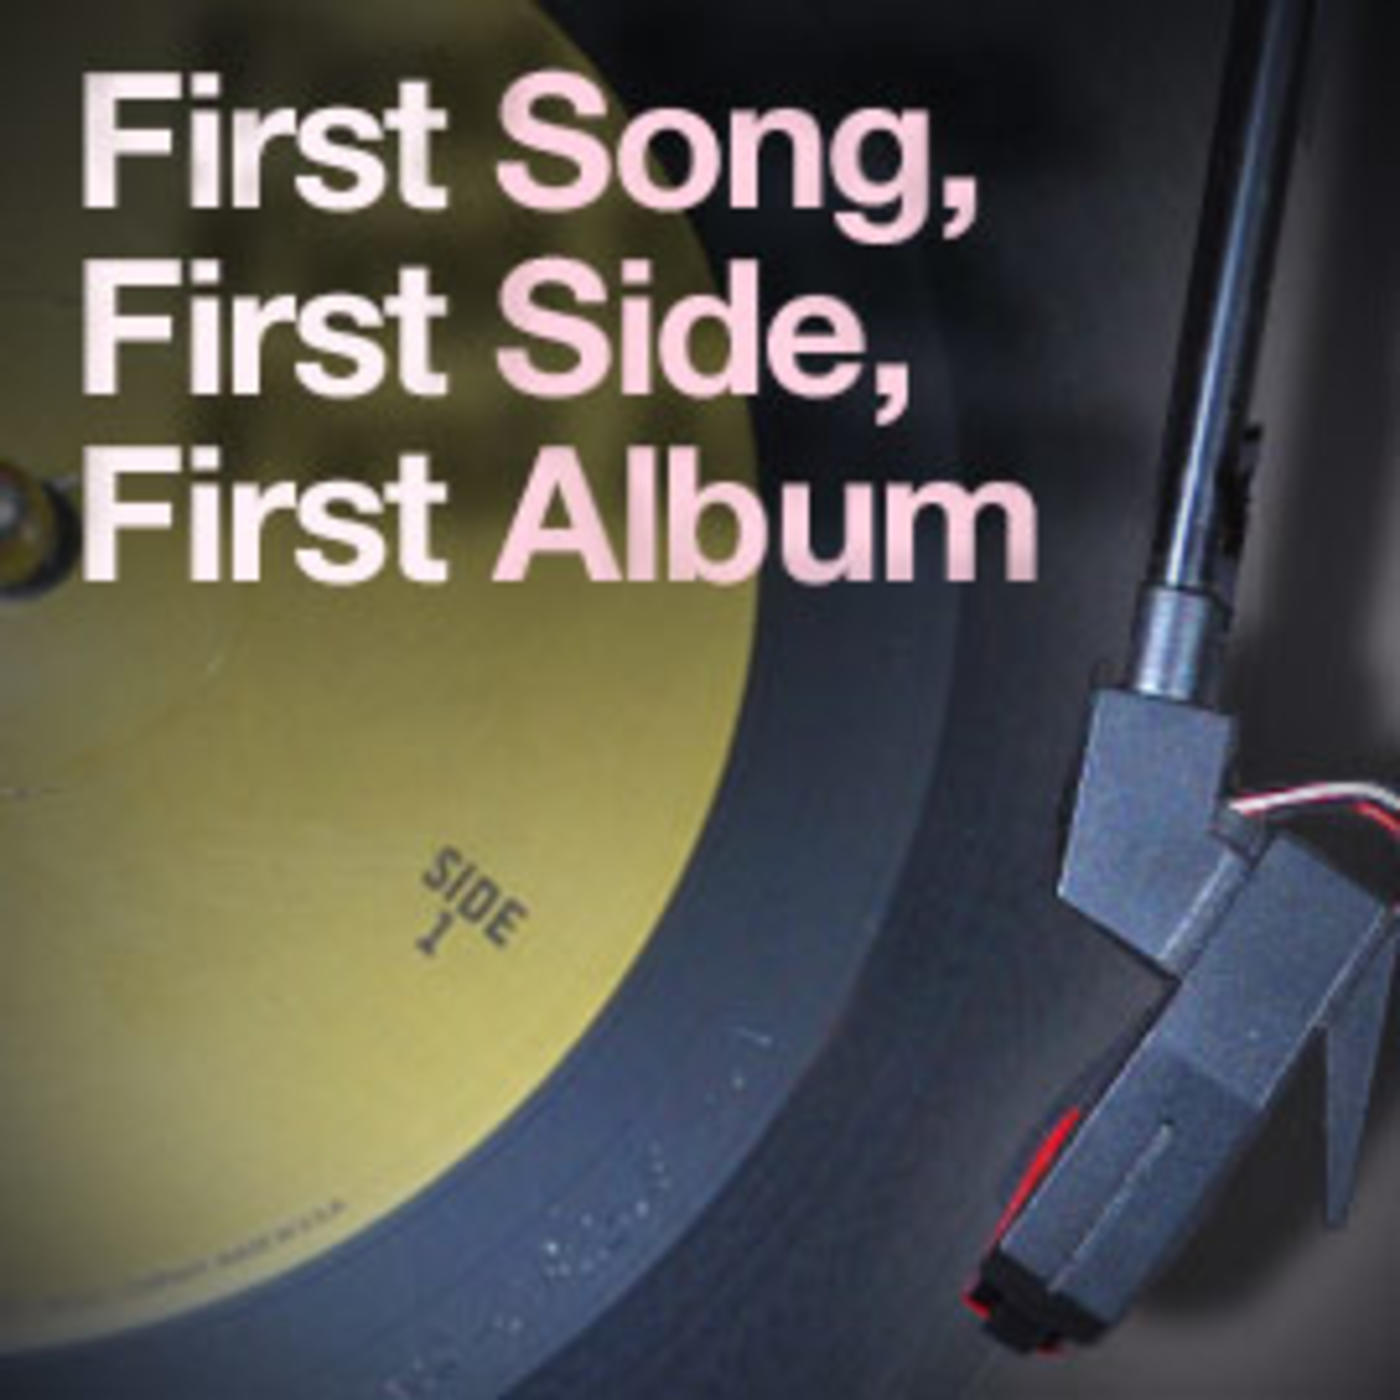 First Song, First Side, First Album